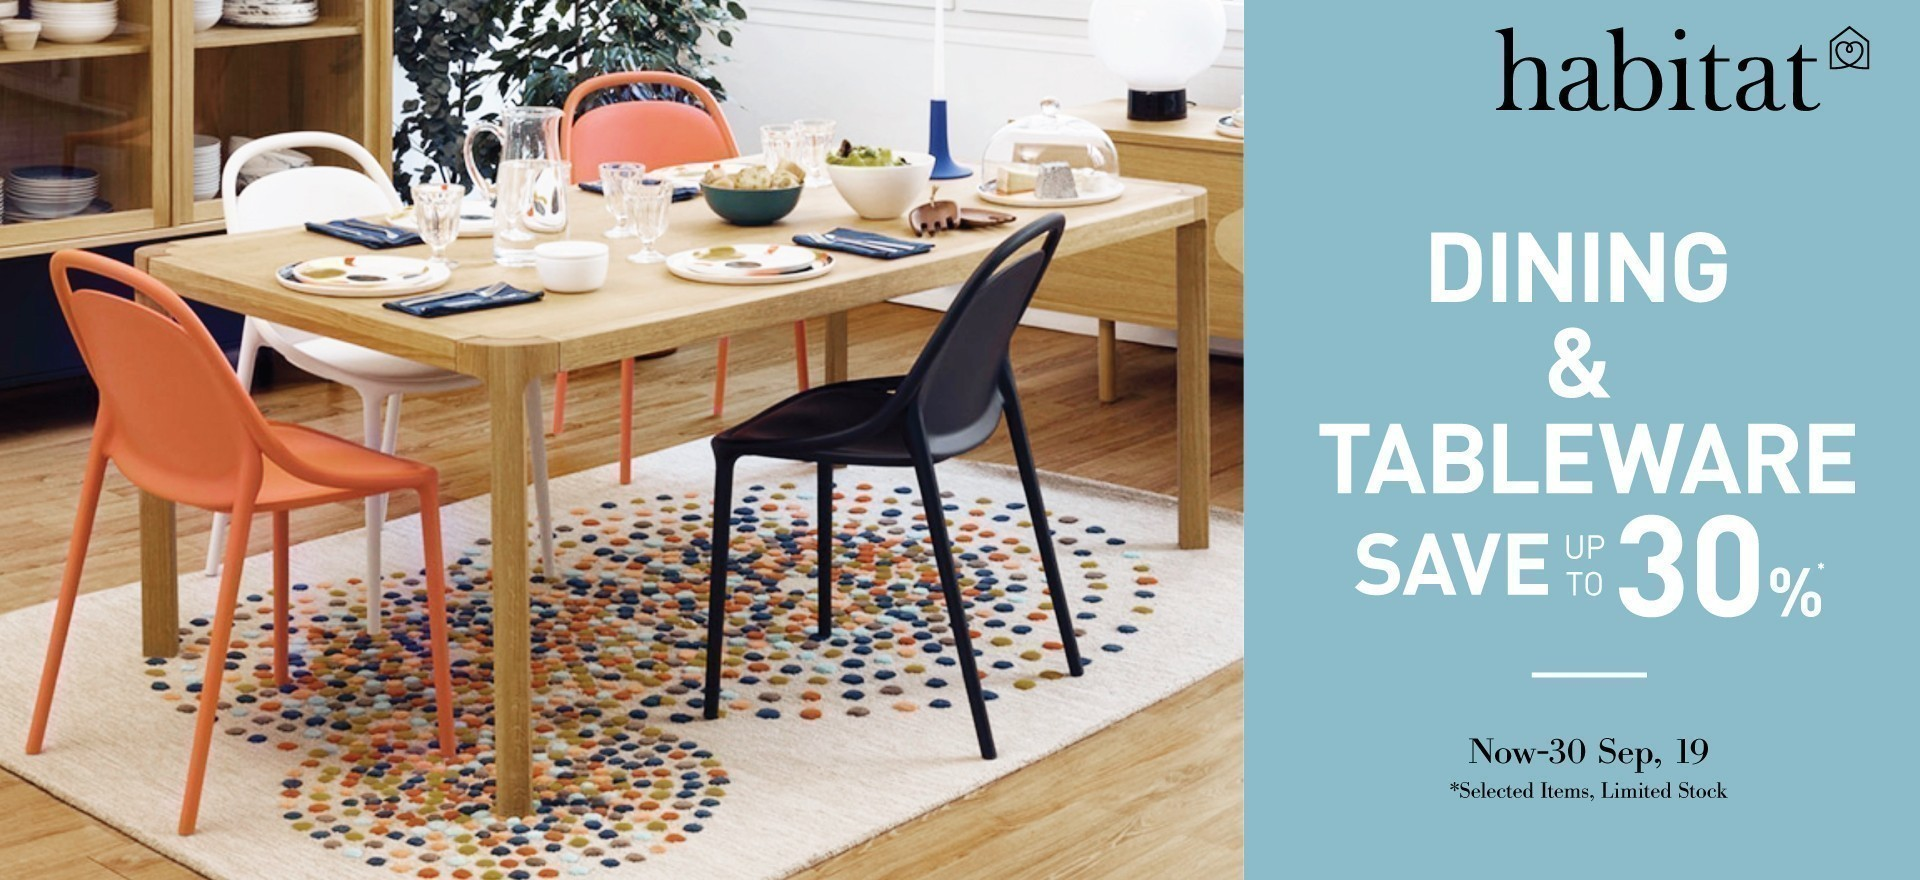 Habitat Dining & Tableware save up to 30%